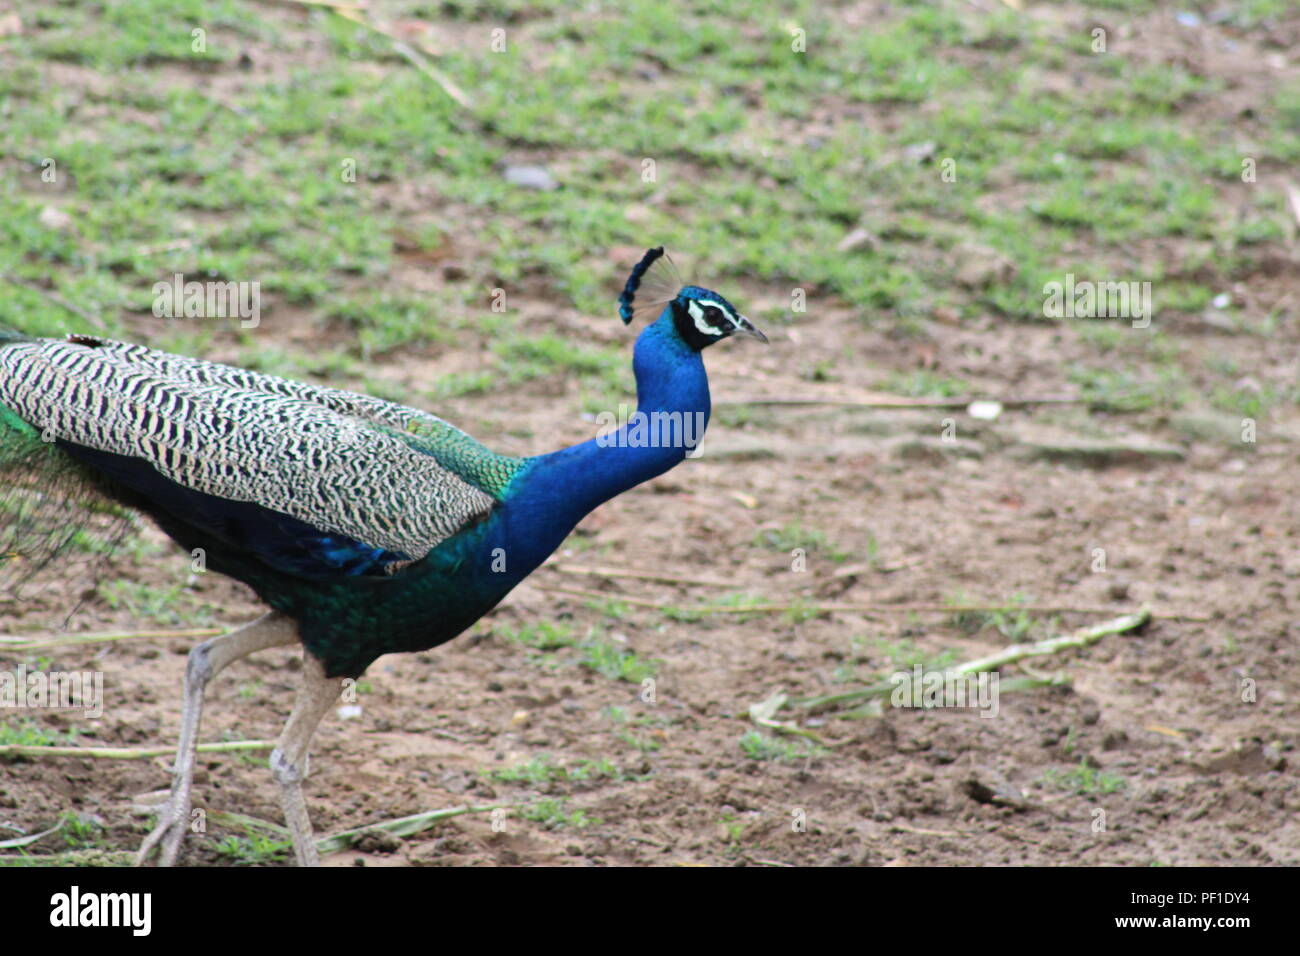 Beautiful Nature in rainy season. beautiful wild life and wild animal .Peacock and peahen - Stock Image